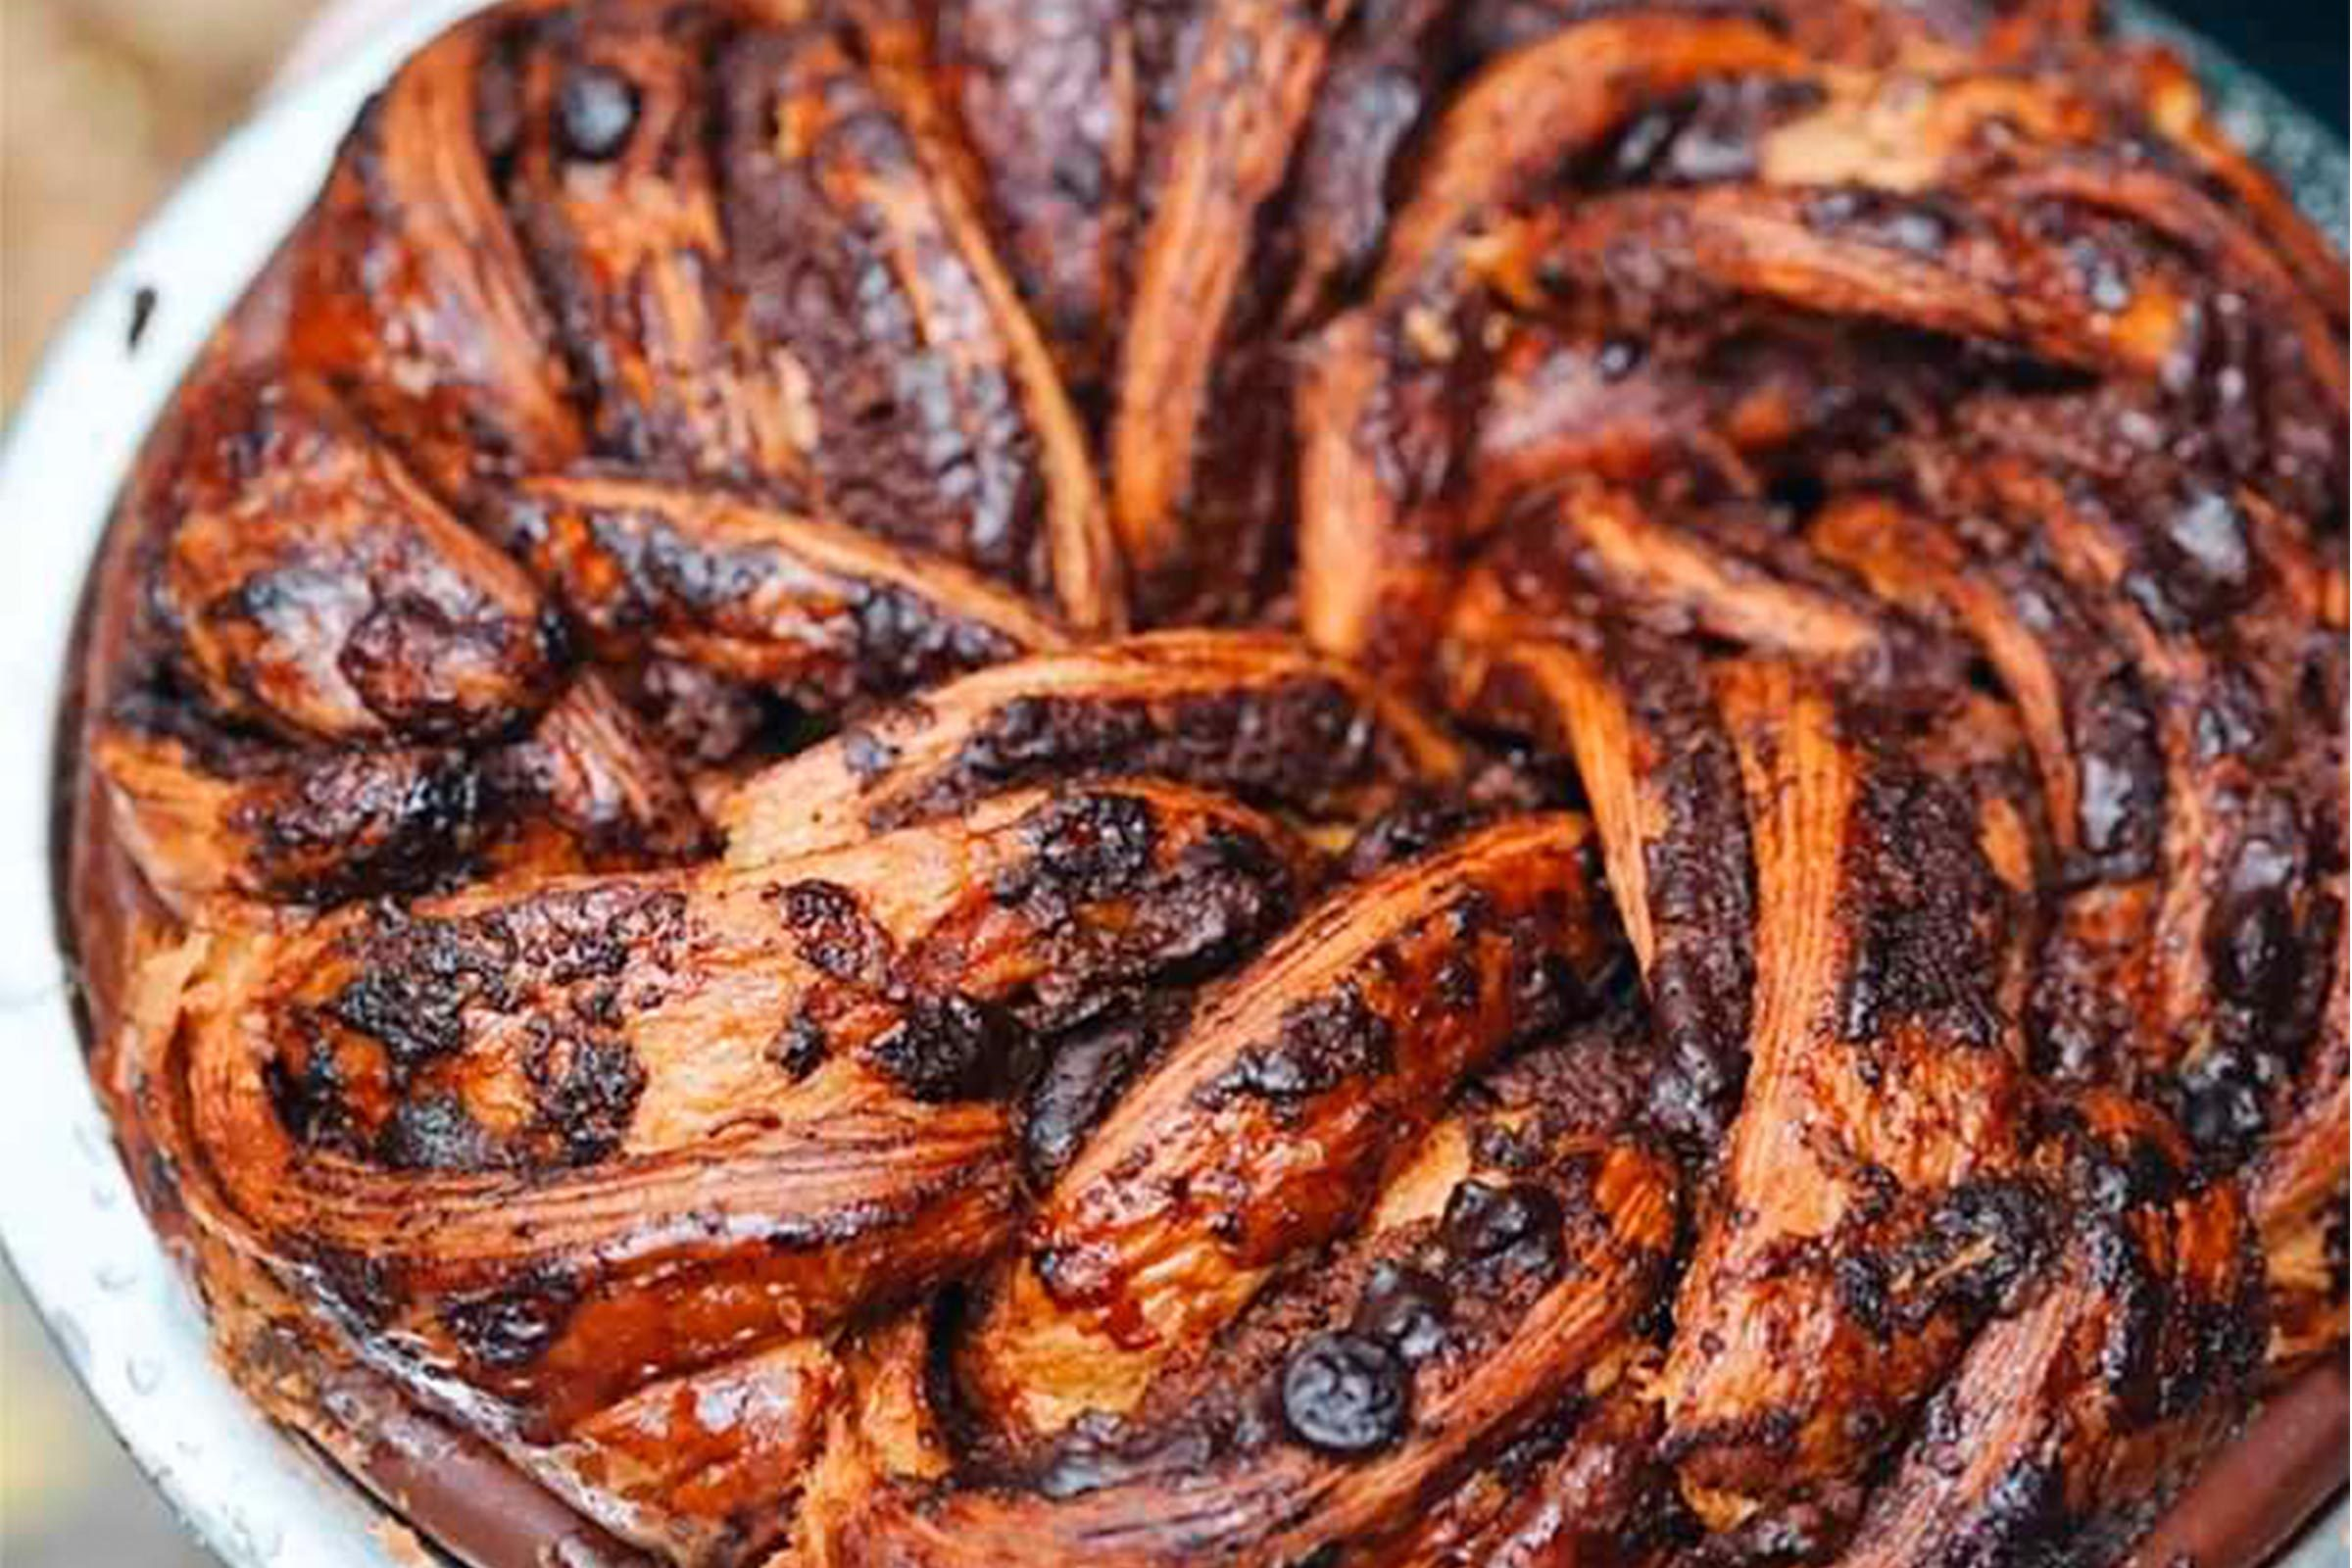 Chocolate babka pie